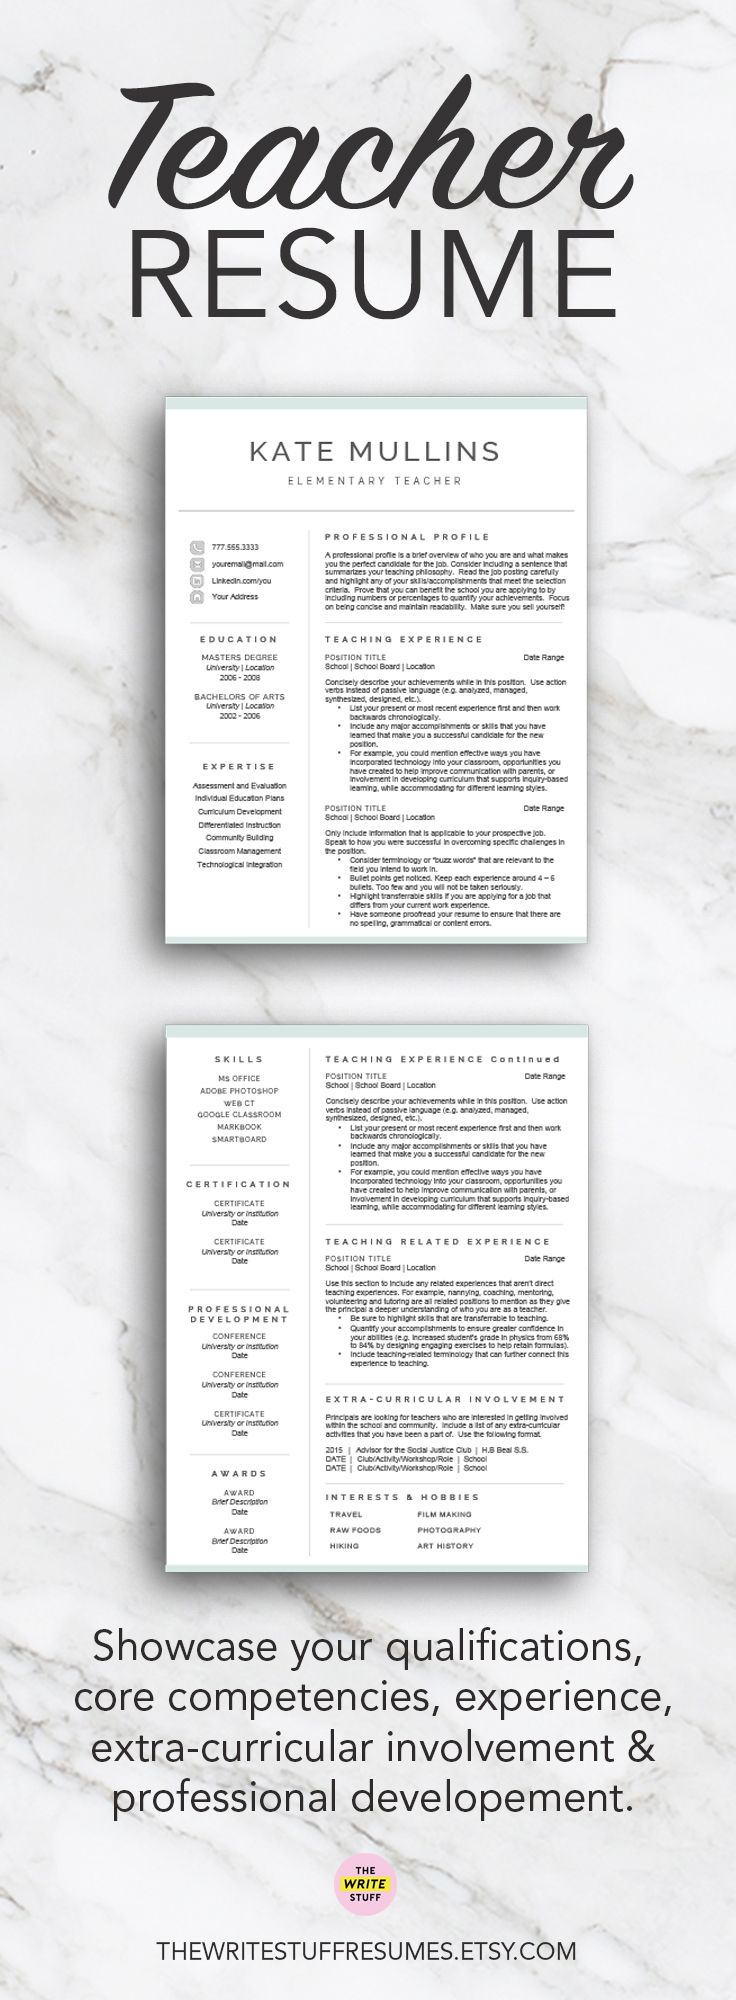 best ideas about teacher resume template resume teacher resume template for word pages 1 2 and 3 page cv template resume for teachers educator cover letter instant